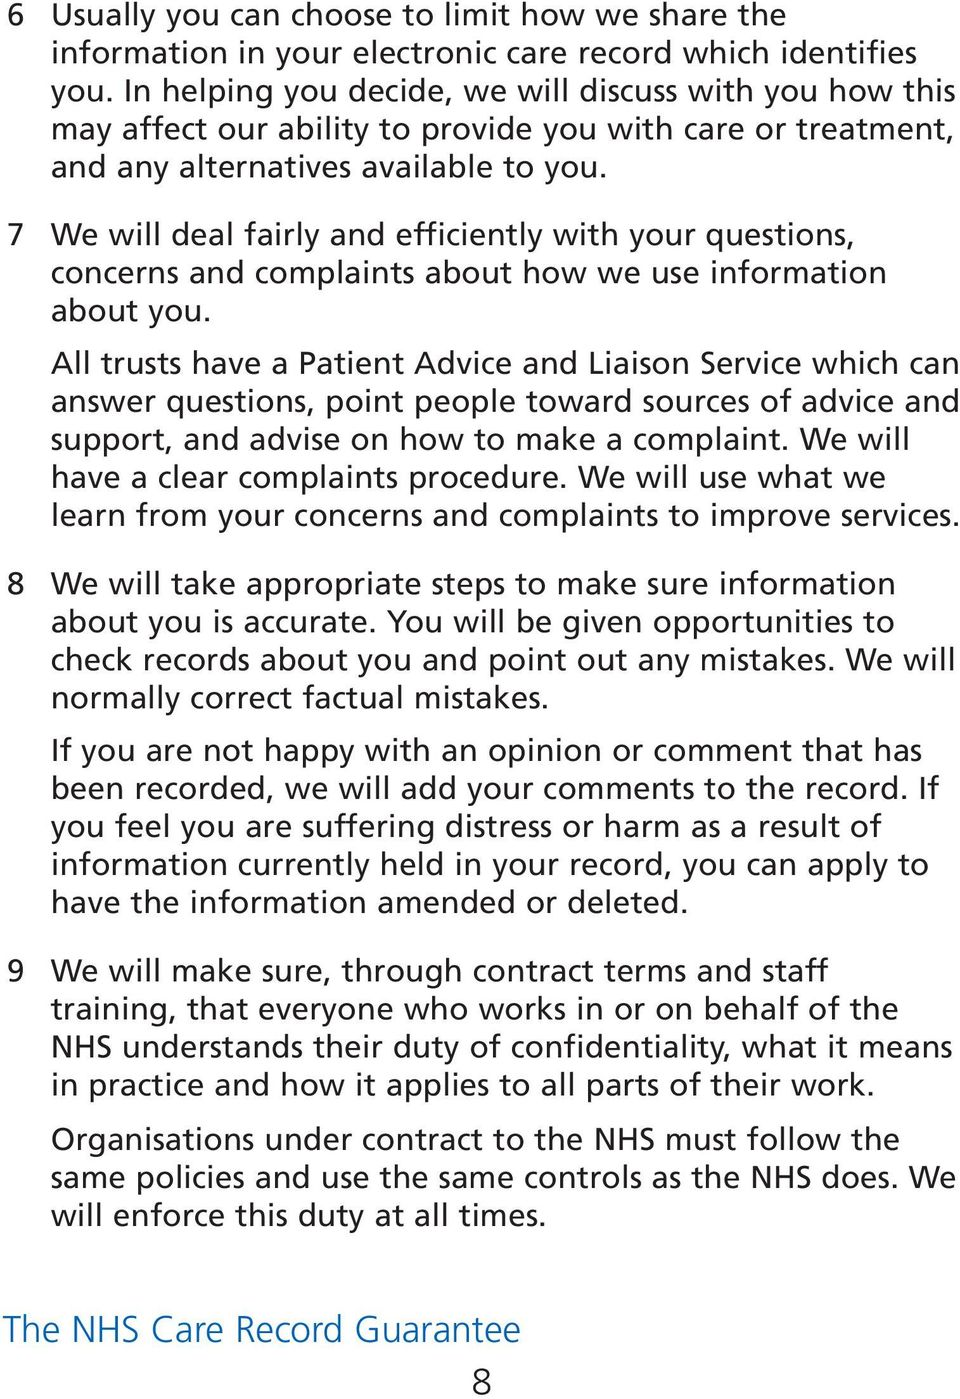 7 We will deal fairly and efficiently with your questions, concerns and complaints about how we use information about you.